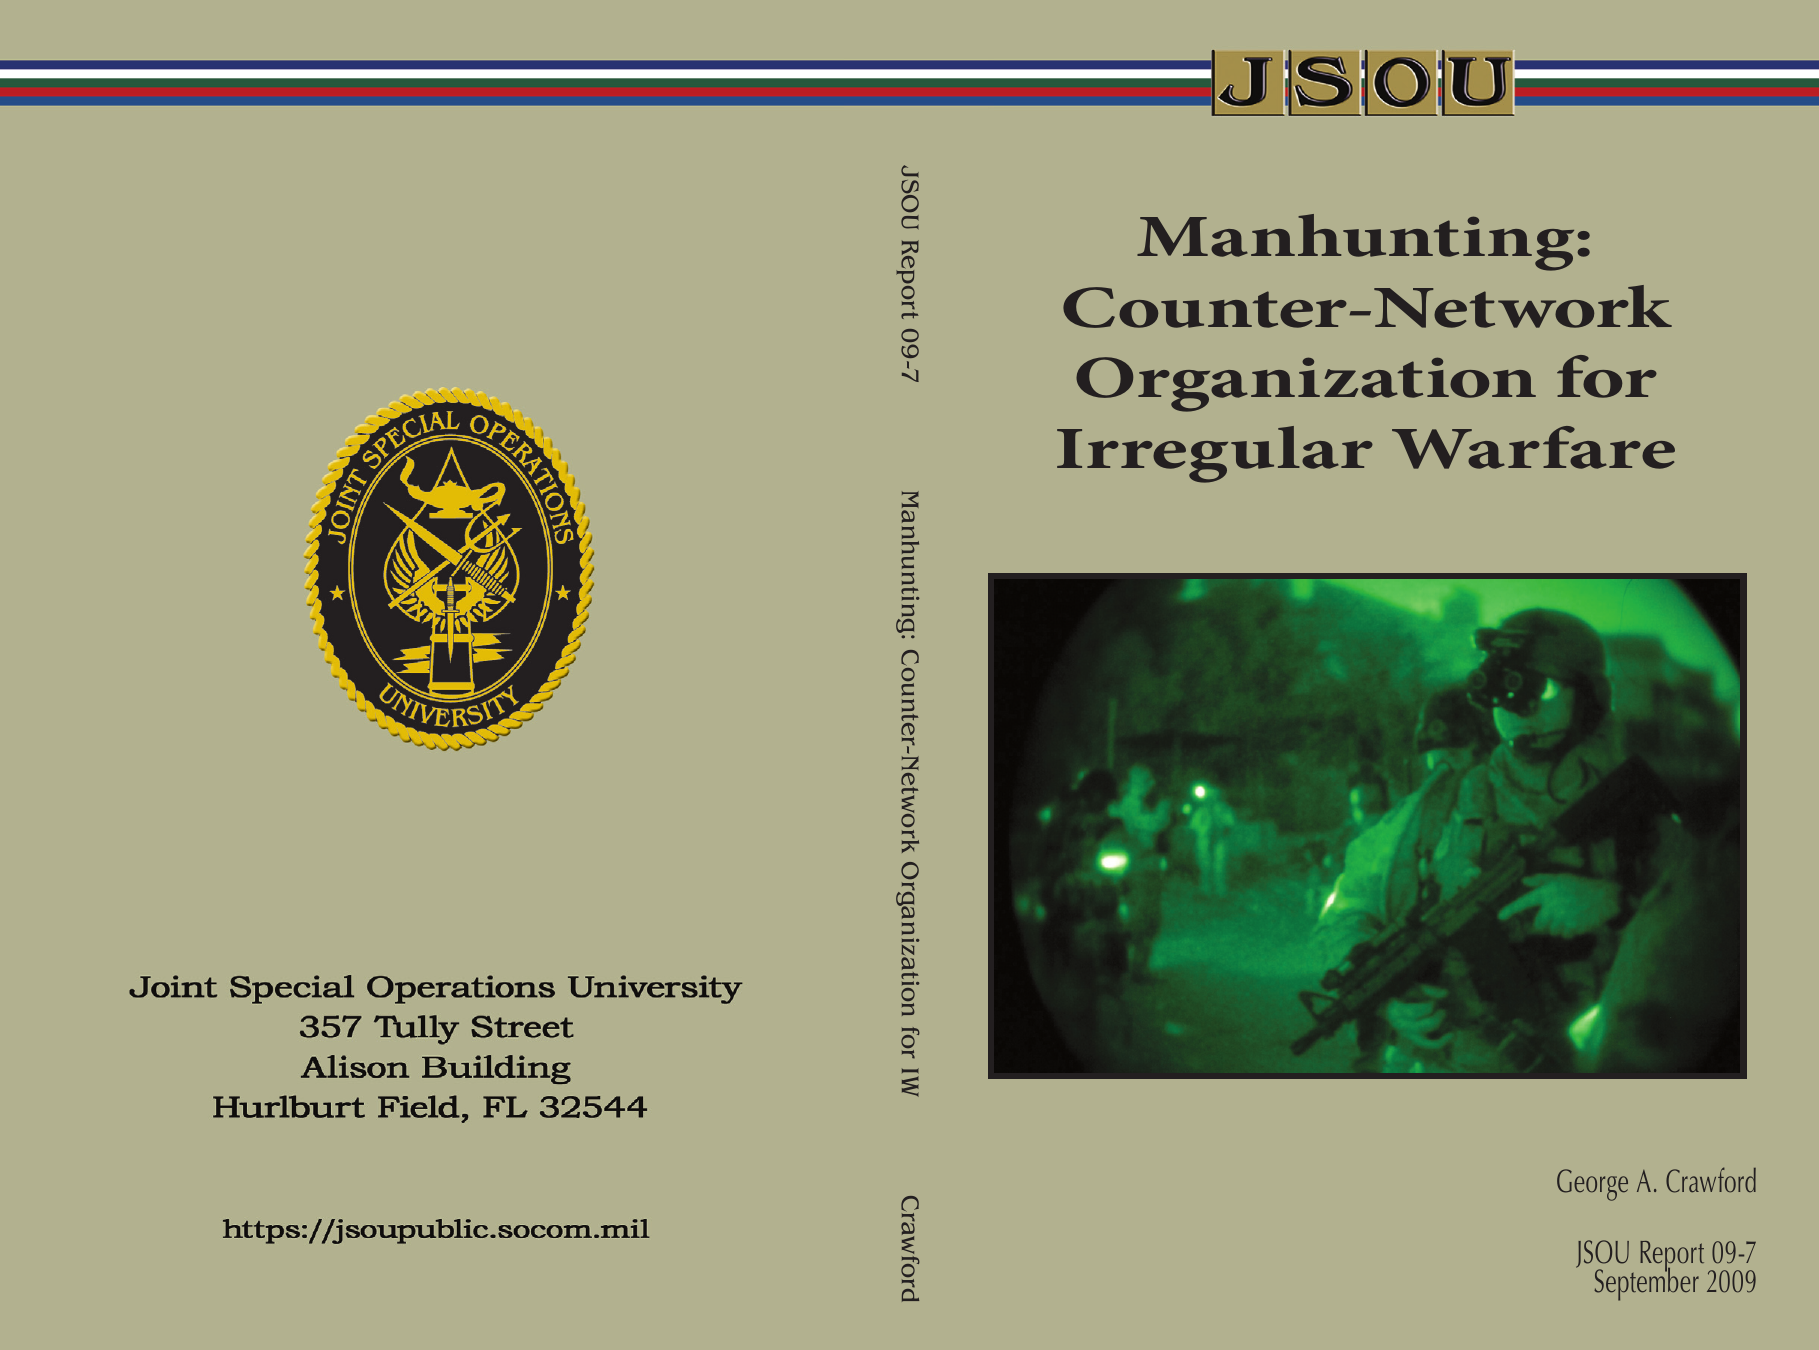 Manhunting: Counter-Network Organization for Irregular Warfare